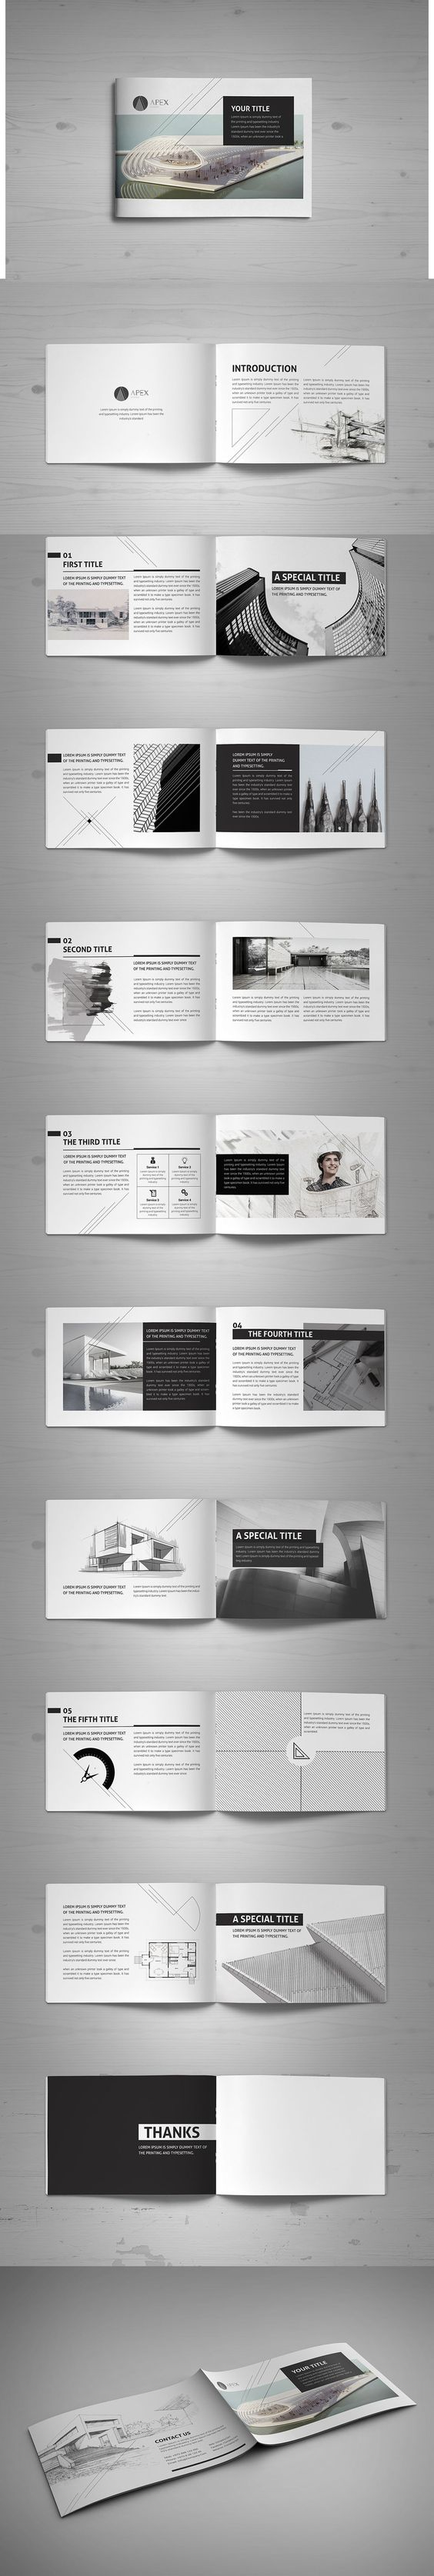 Minimal Modern Black & White Architecture Brochure ... Architecture Portfolio Layout Indesign